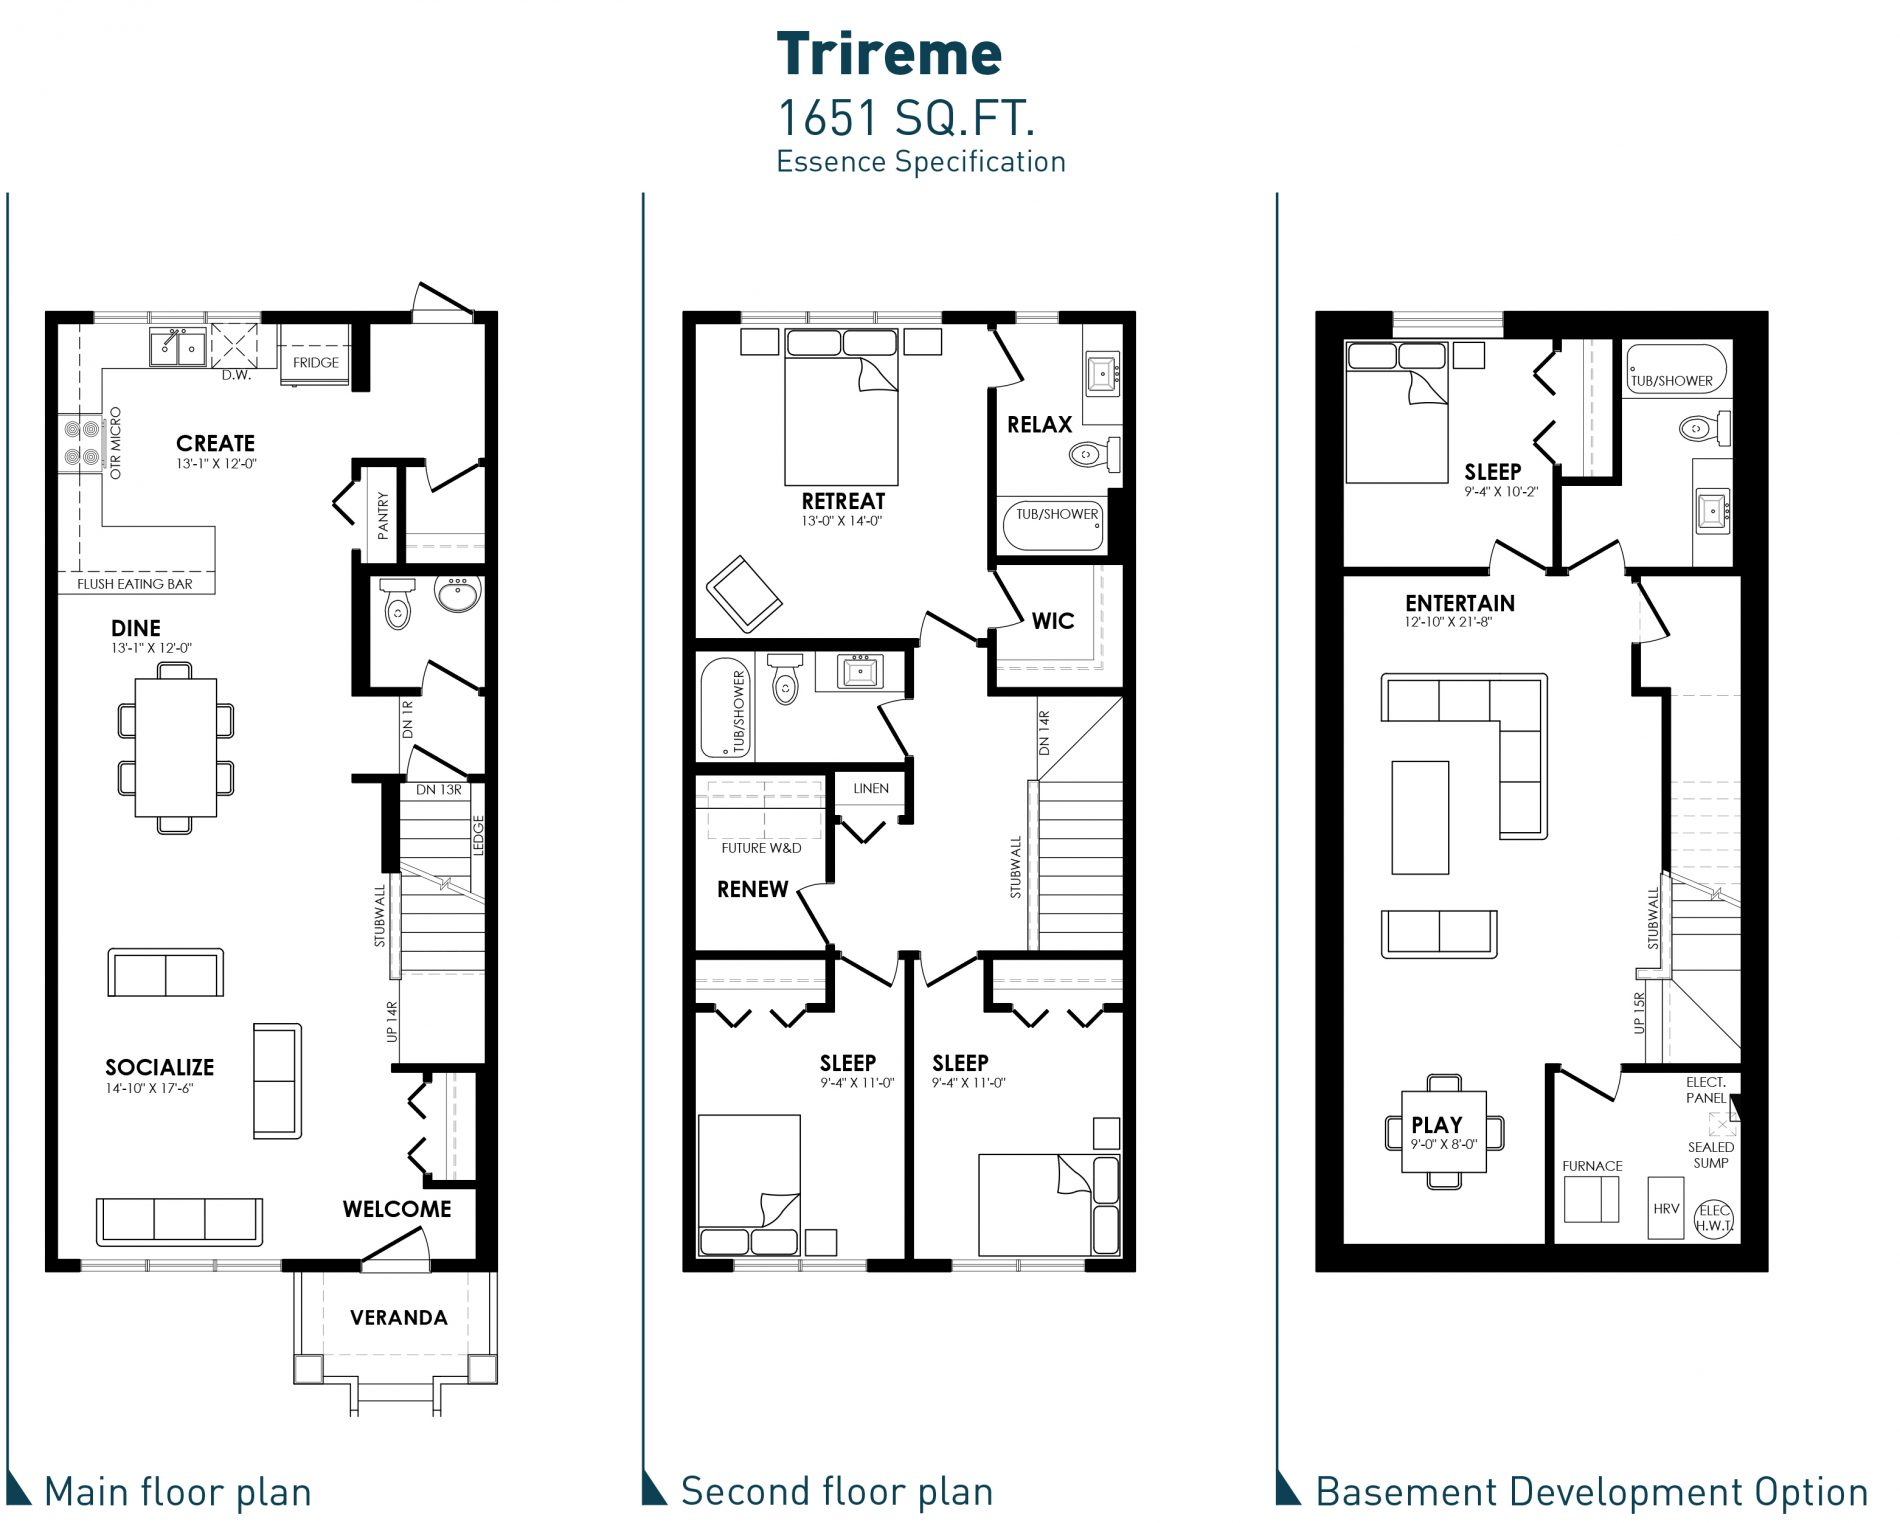 34067 Trireme – SOLD essence blacklines image